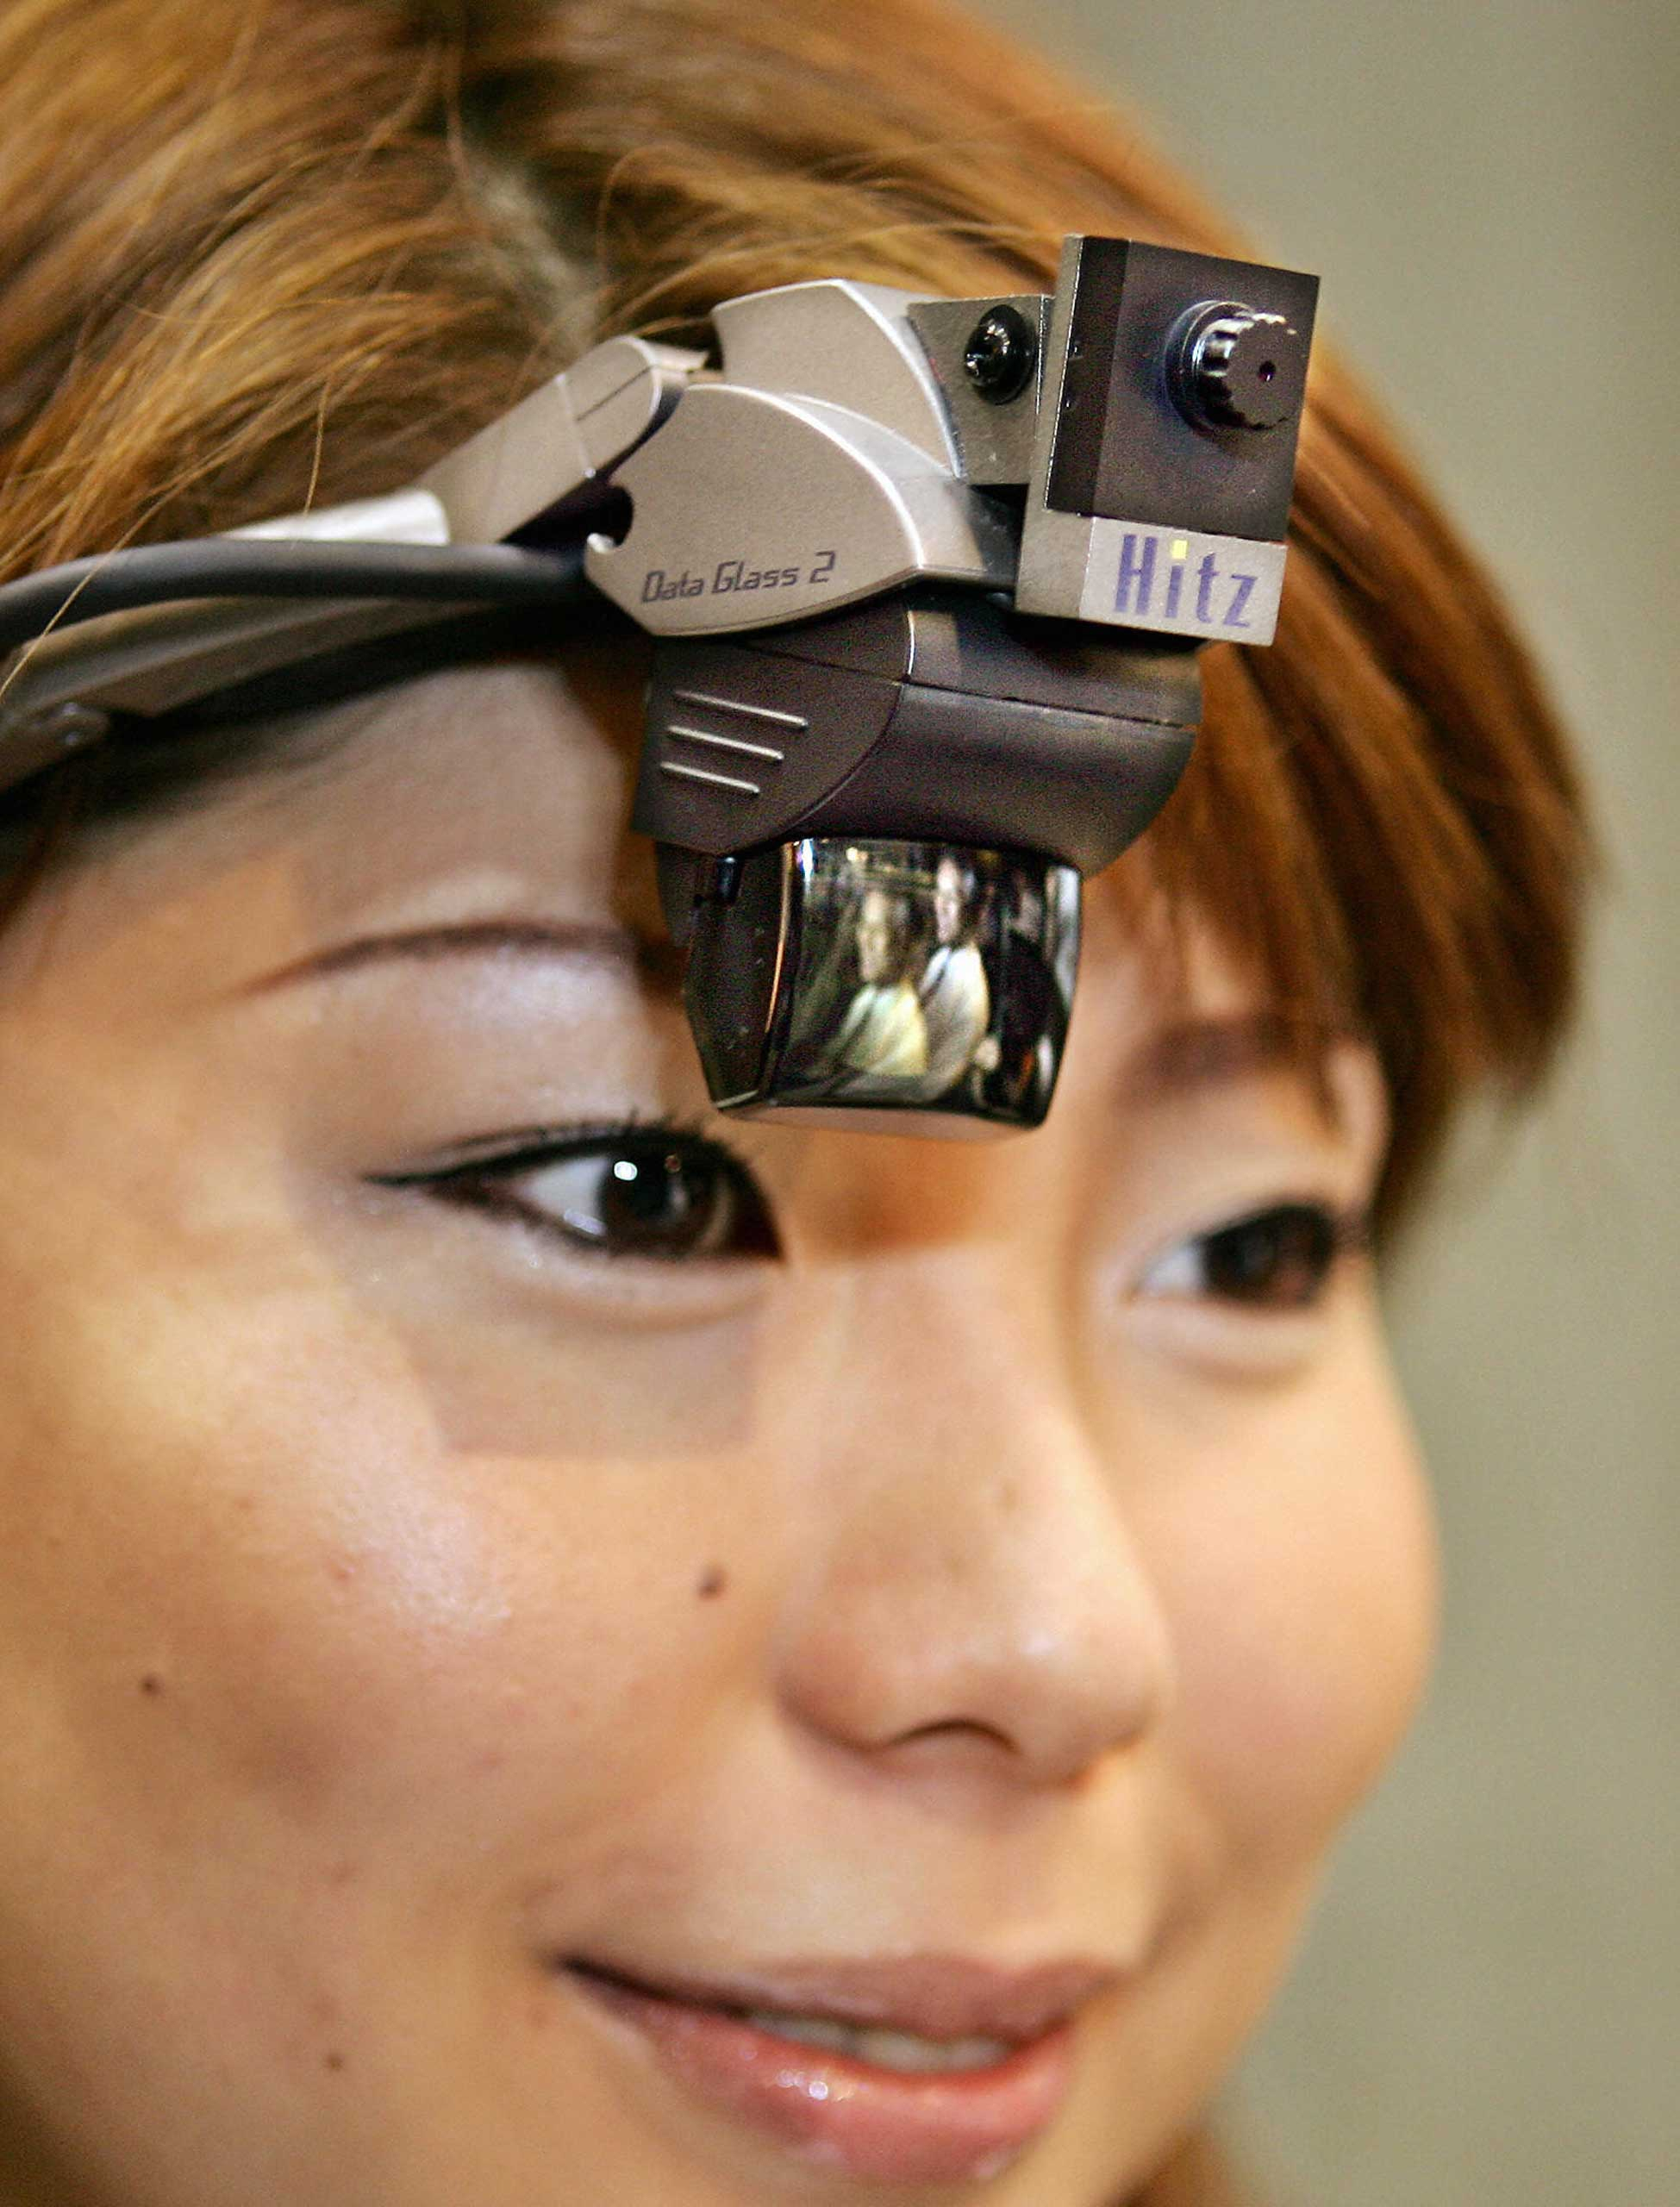 2005                                                              A girl wore a full color head mounted display with a built-in camera as Japan's machinery maker Hitachi Zosen and Shimadzu unveiled a wearable computer, consisting of the HMD and a palm sized Windows XP PC with a pointing device at a virtual reality exhibition in Tokyo.